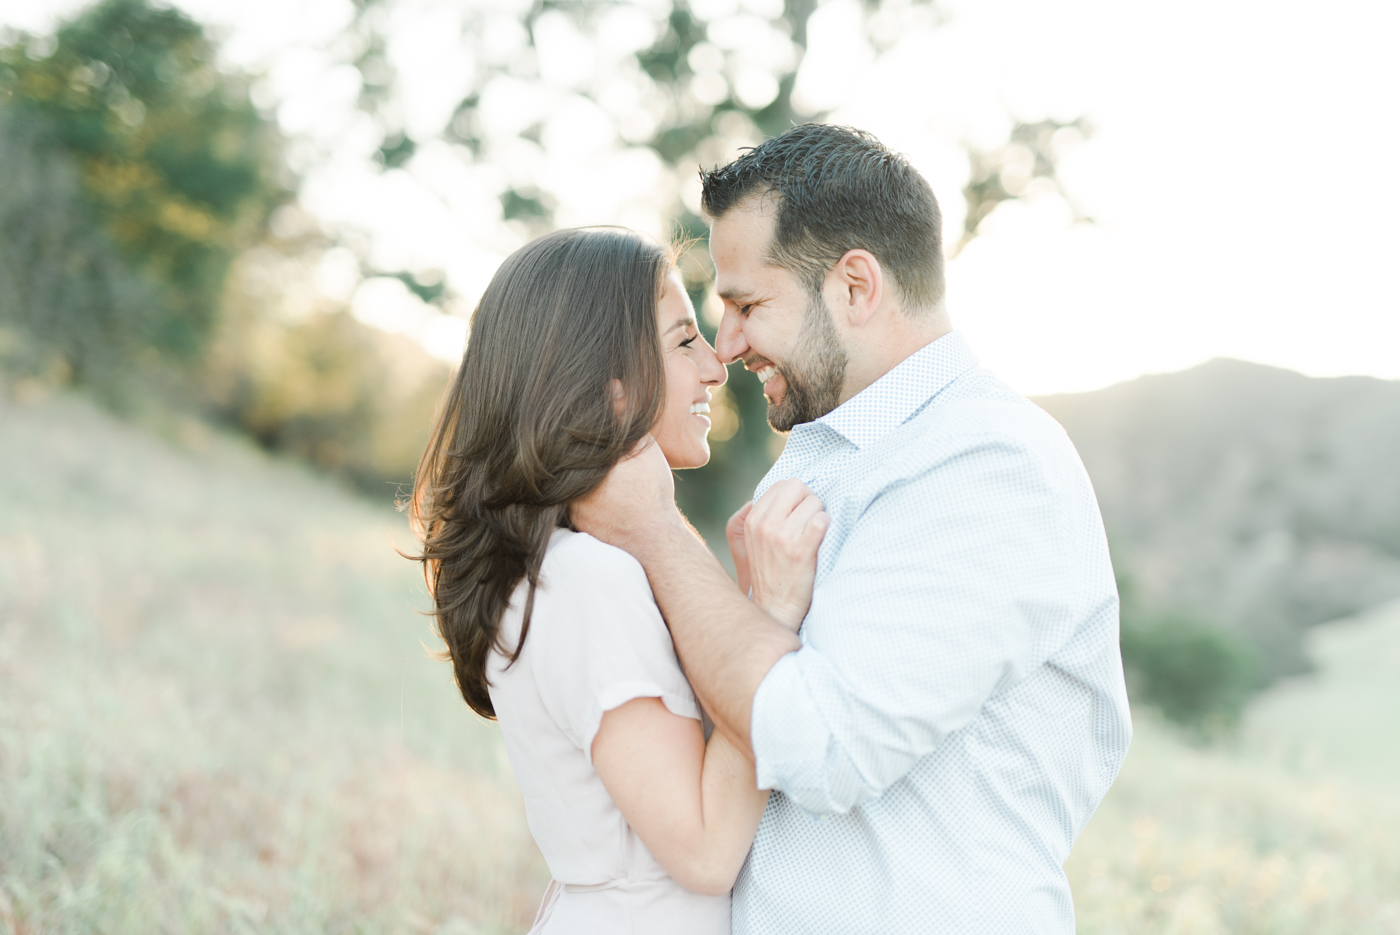 a&a_malibu_creek_state_park_engagement_session_los_angeles_fine_art_wedding_photographer-10.jpg